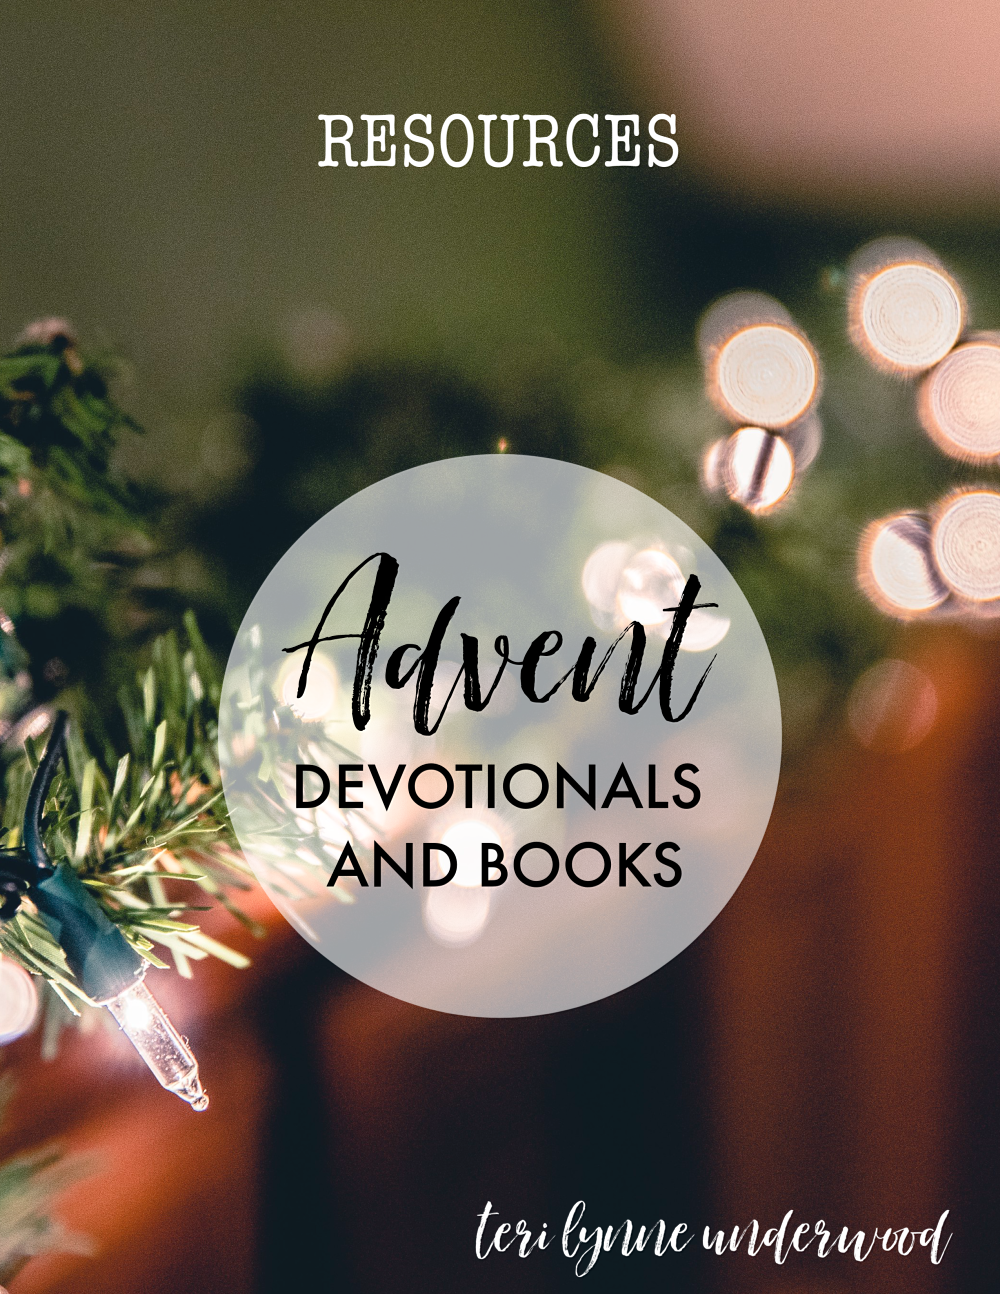 My Favorite Advent Devotionals and Books